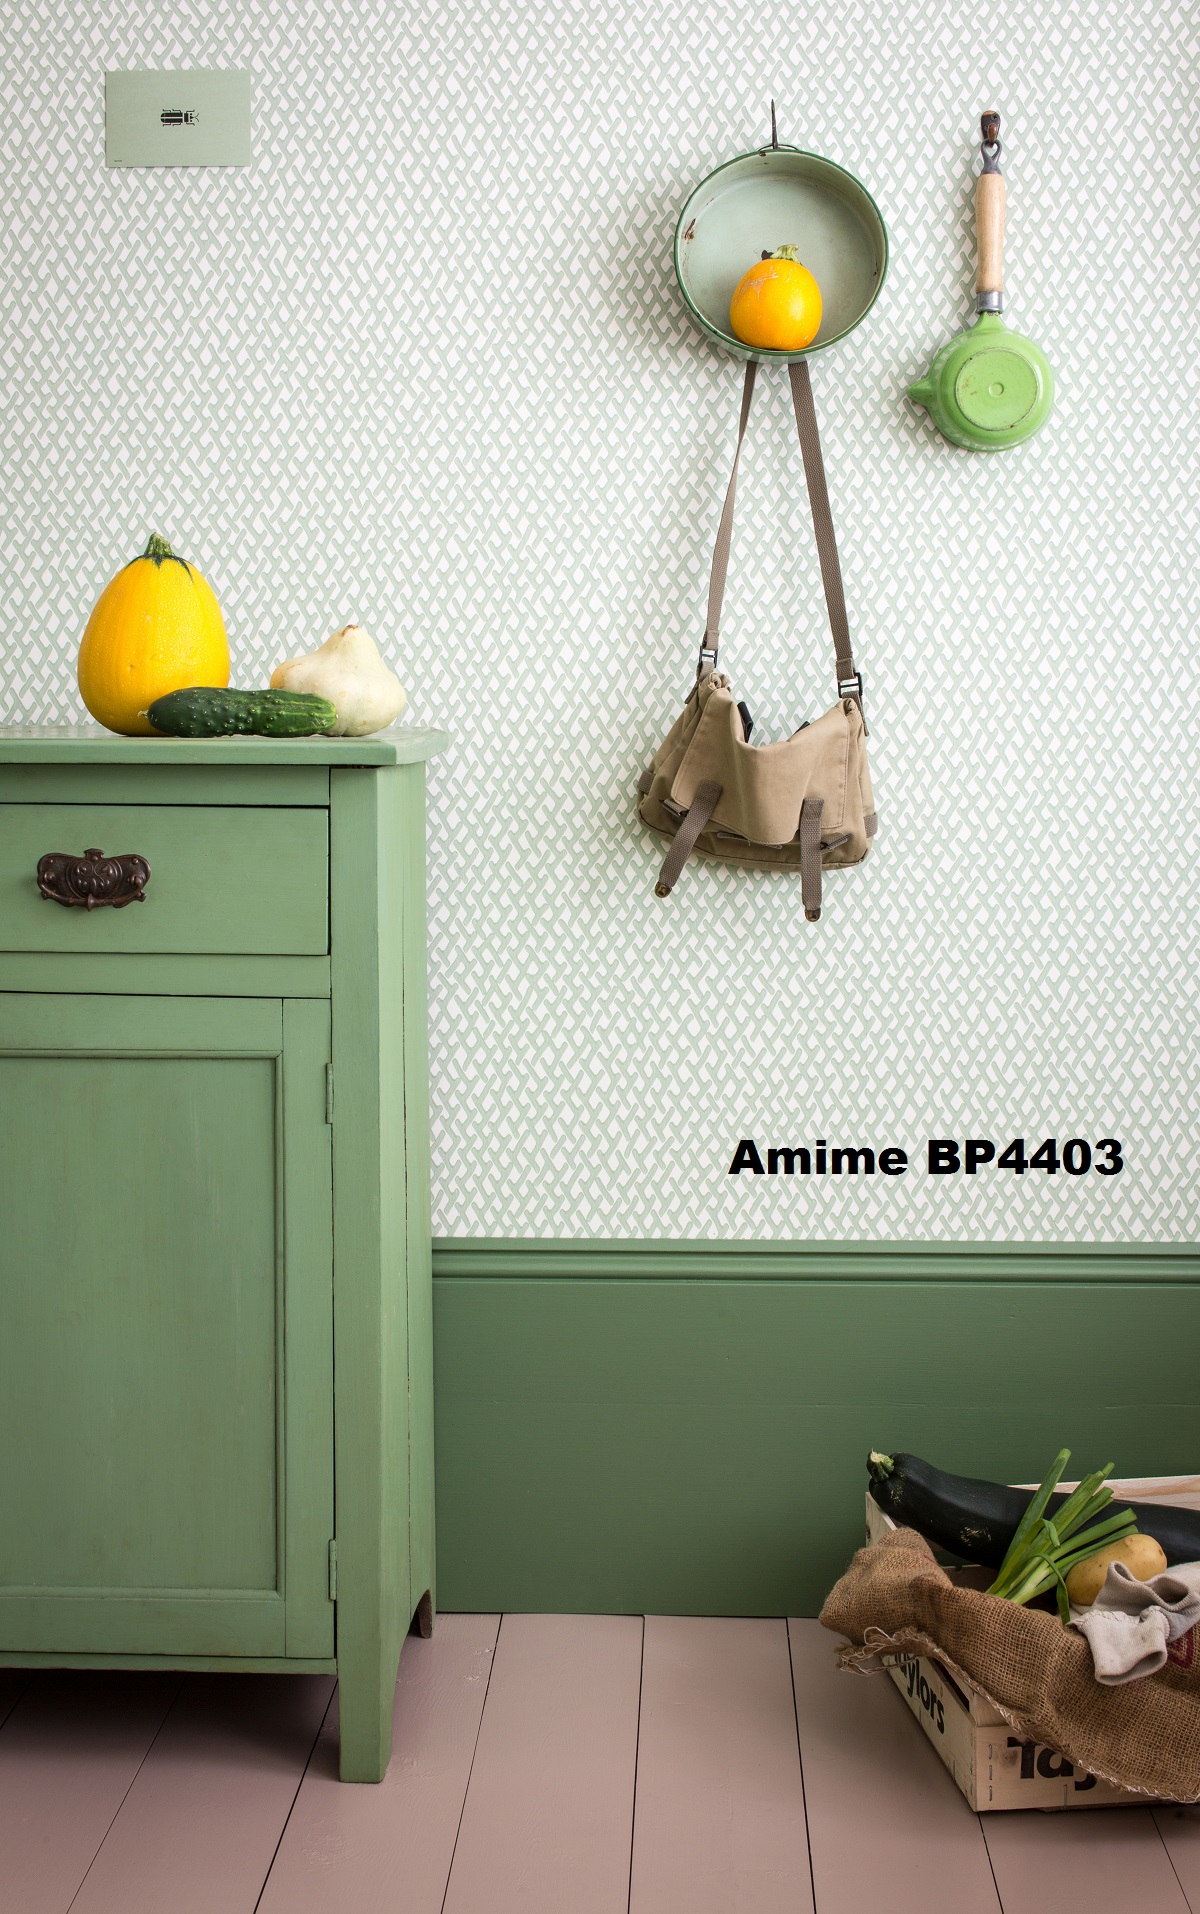 Amime_BP4403 small